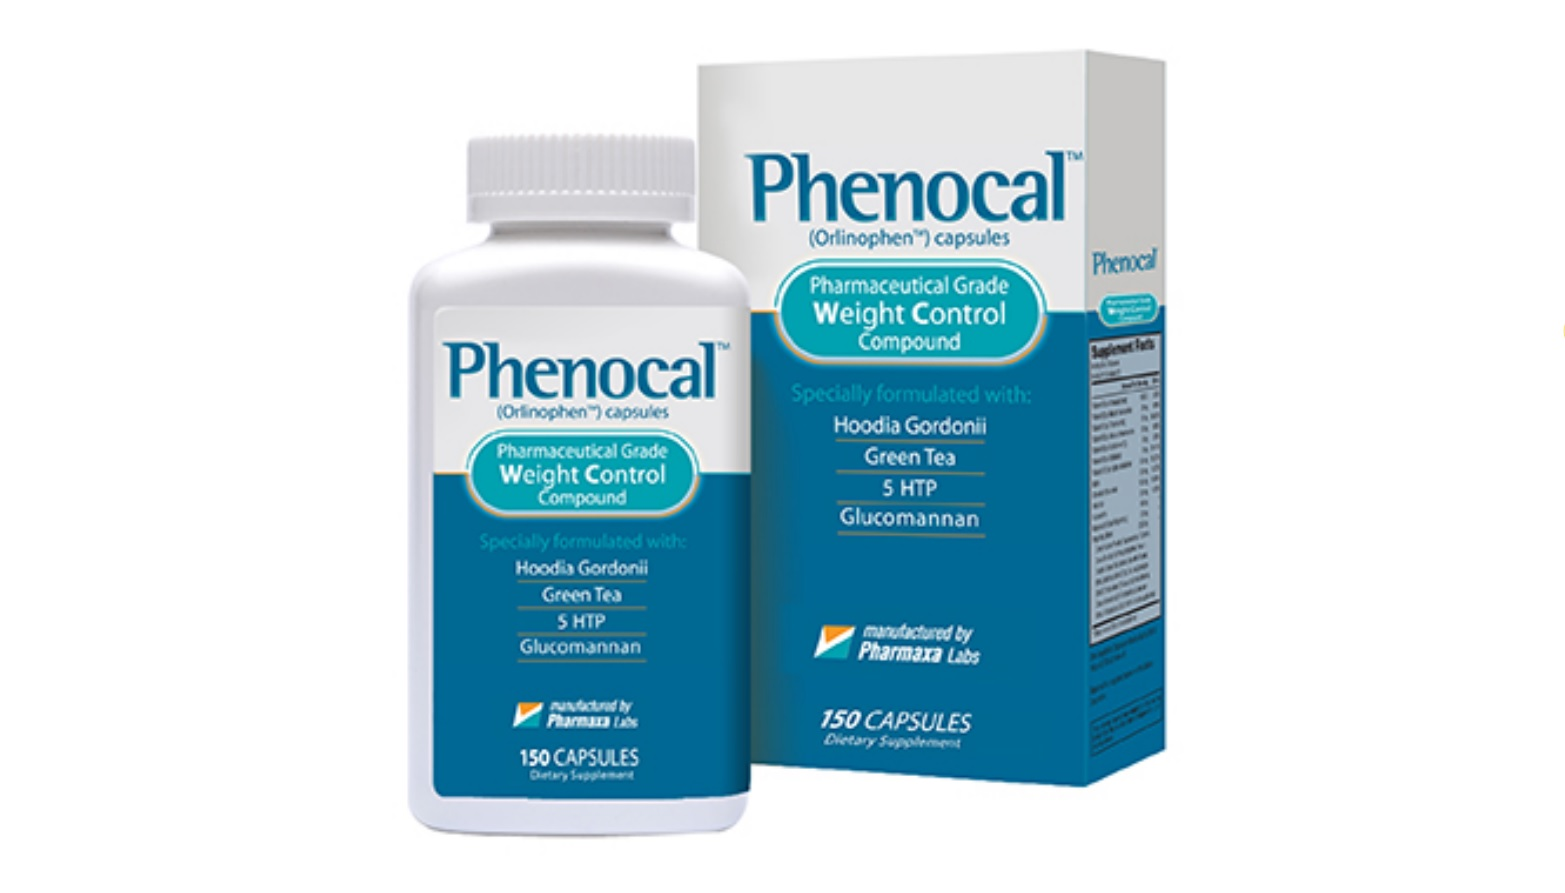 Phenocal Diet Pill Does It Work To Lose Weight Effectively